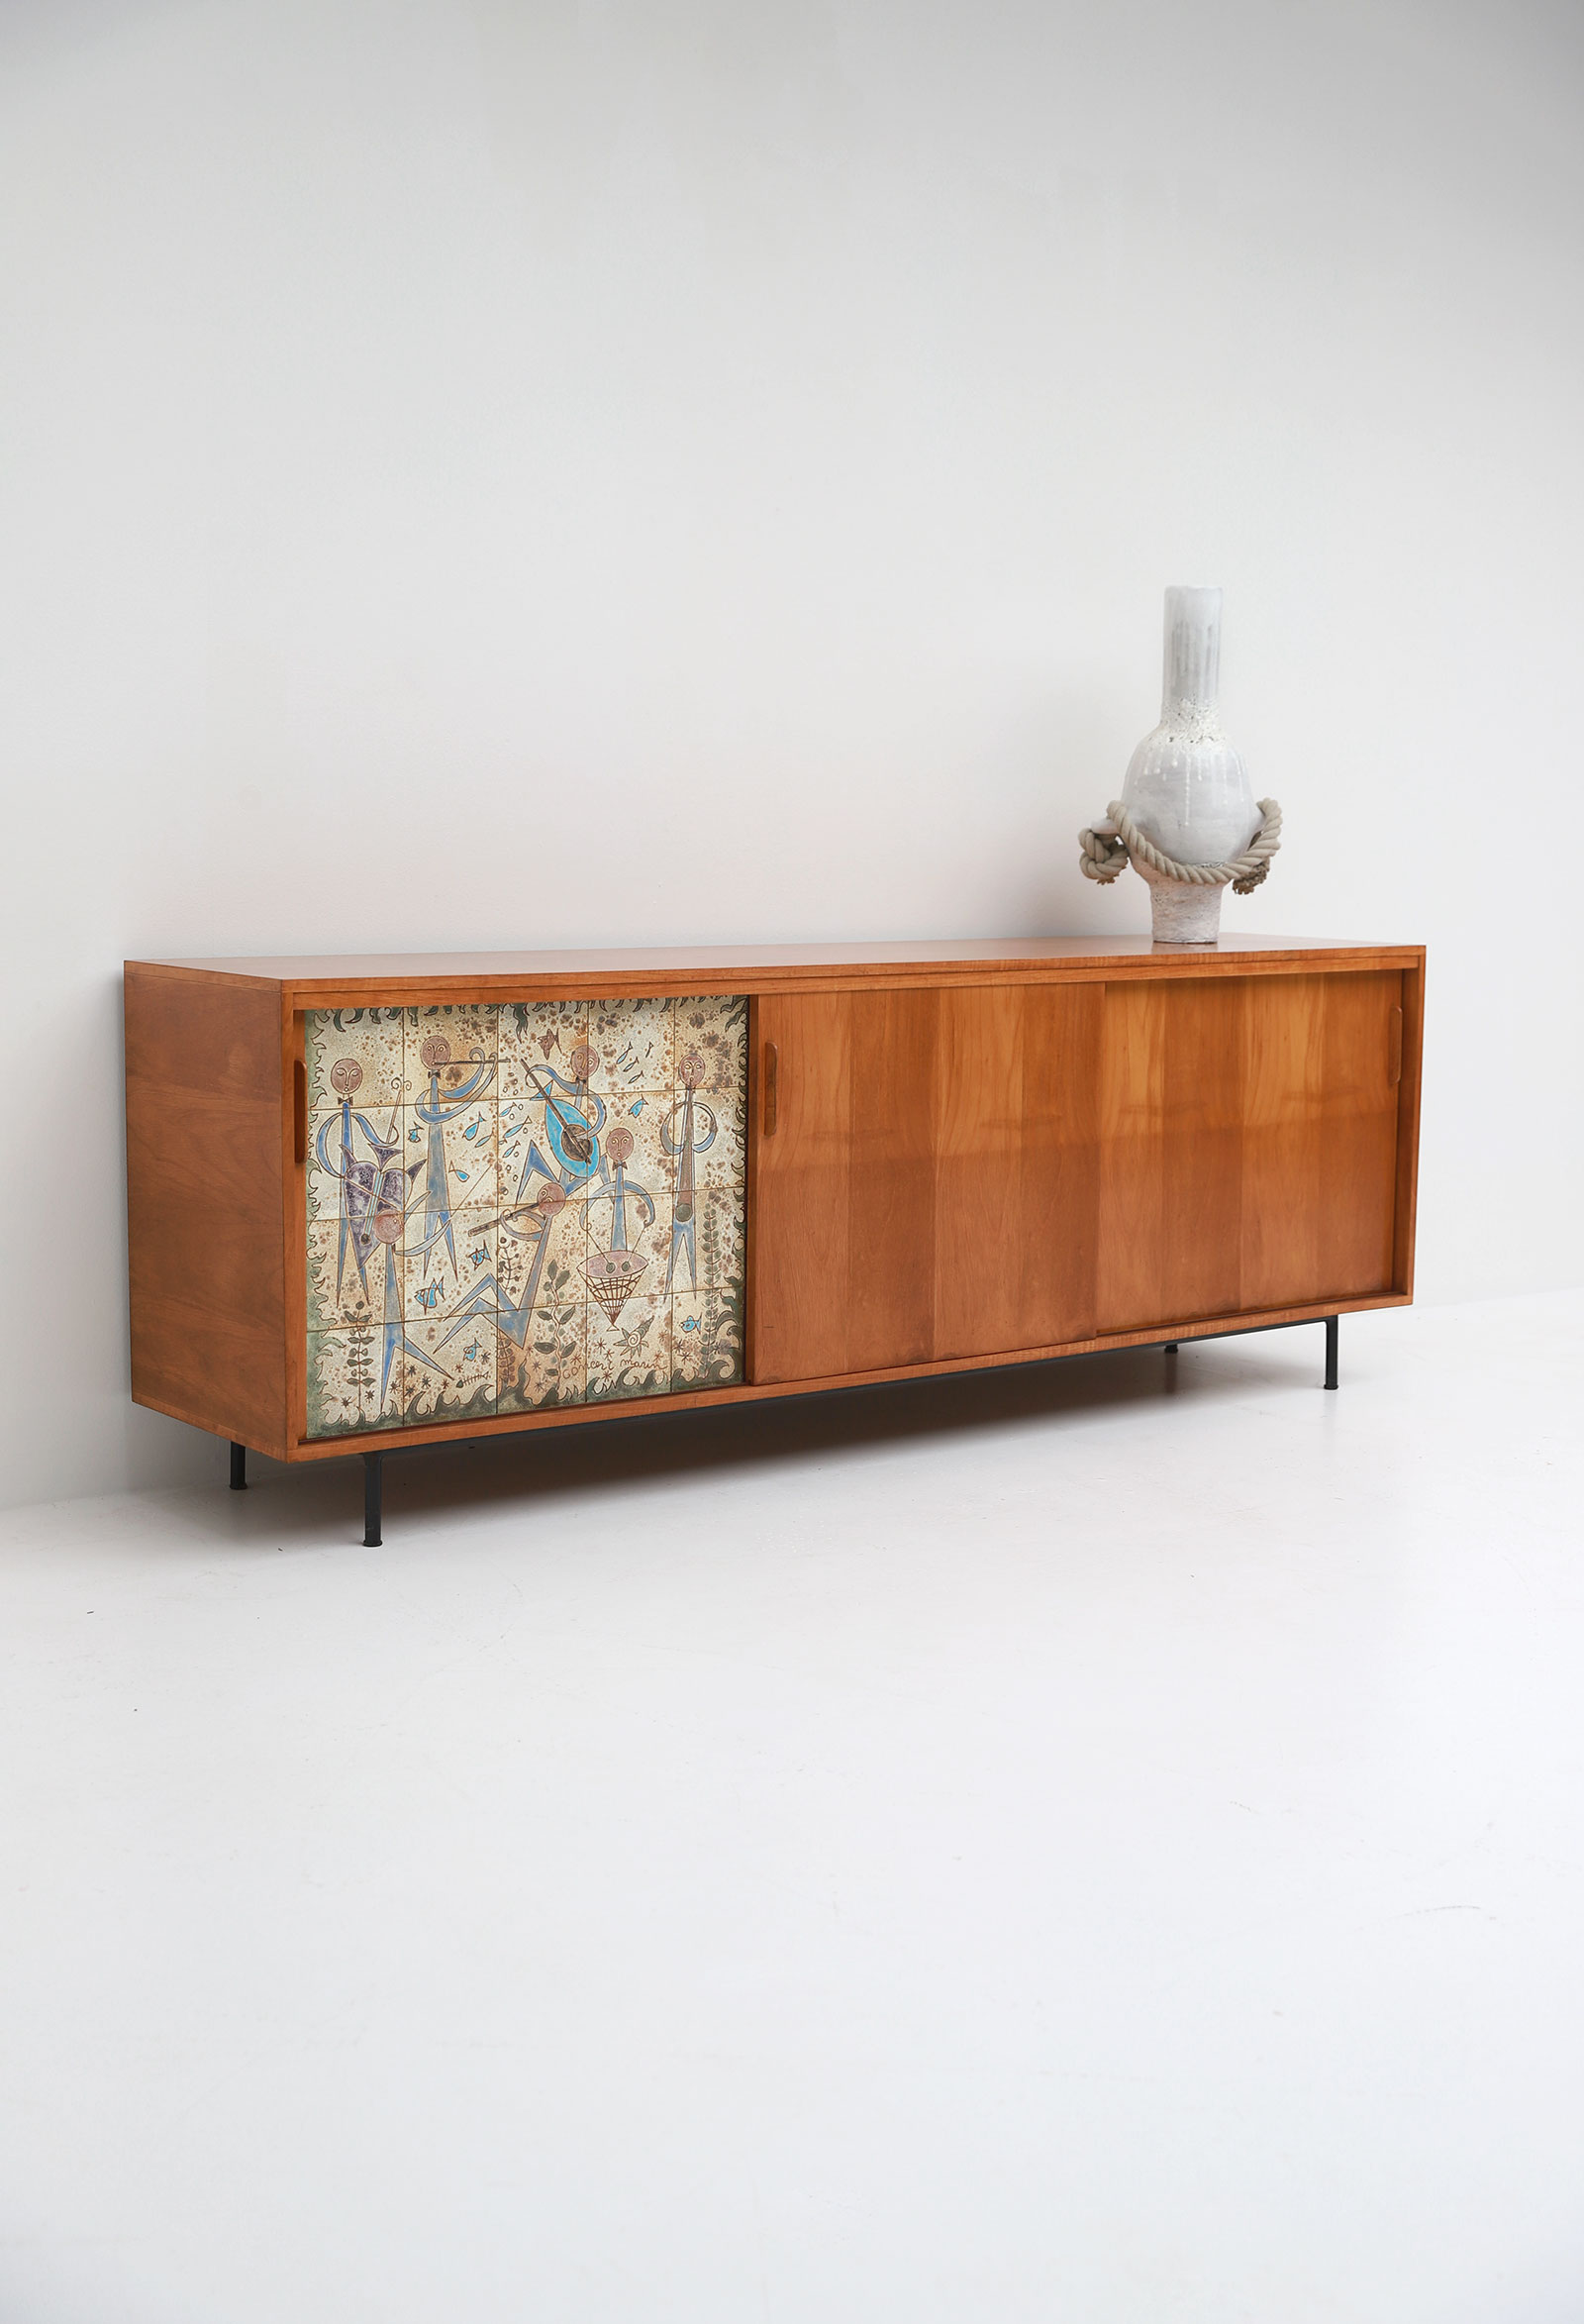 Sideboard with Ceramic Tiles Charles-Emile Pinson 1958image 9